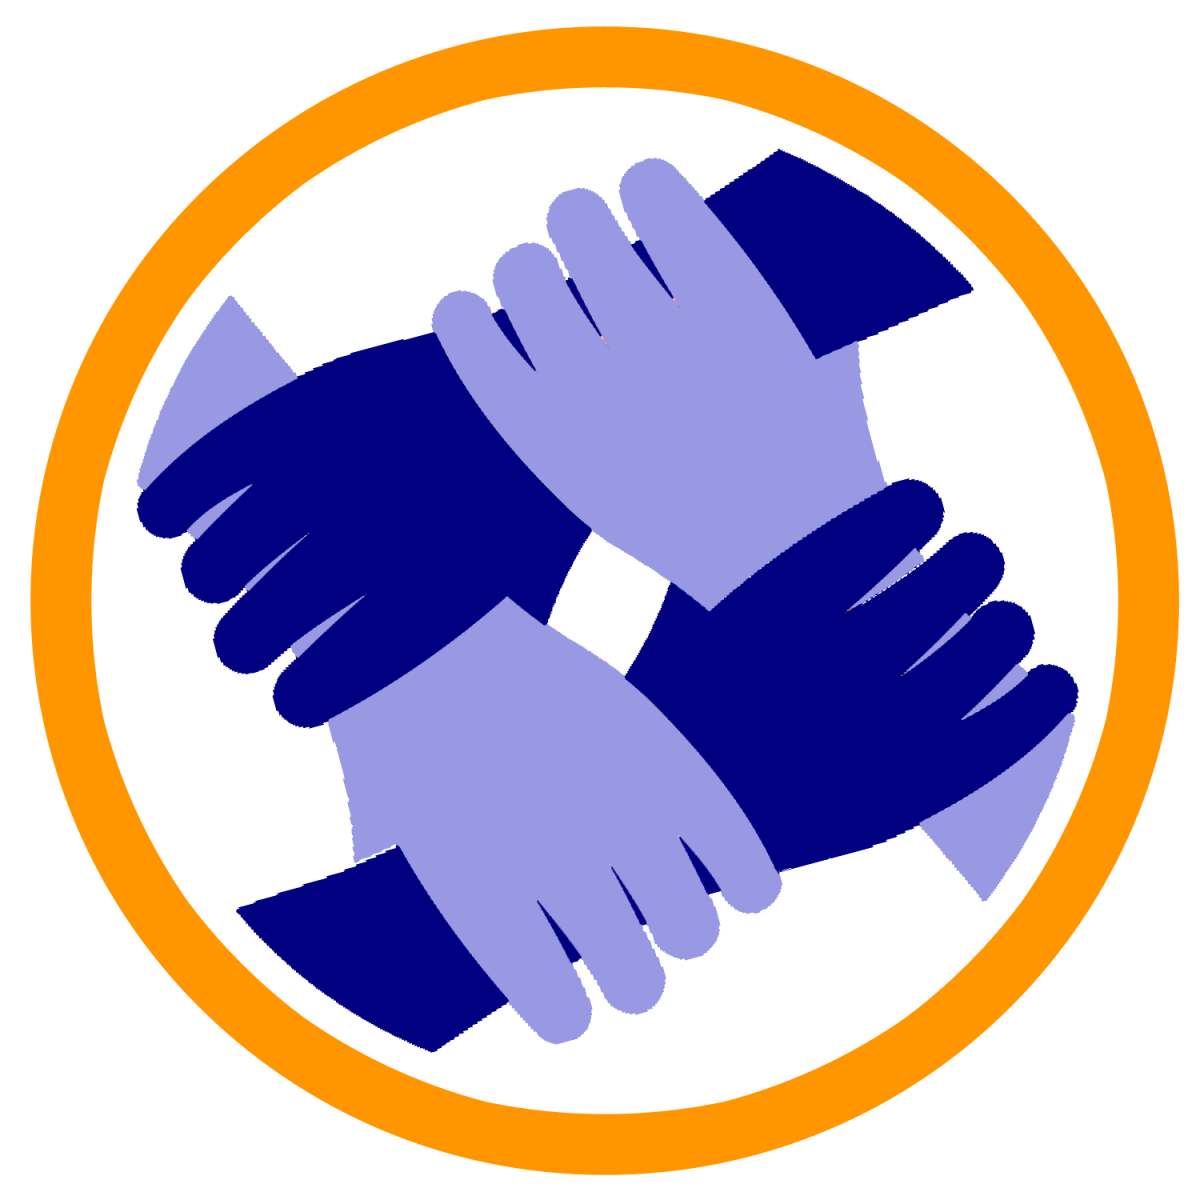 Handshake clipart helping hand. Our impact united way